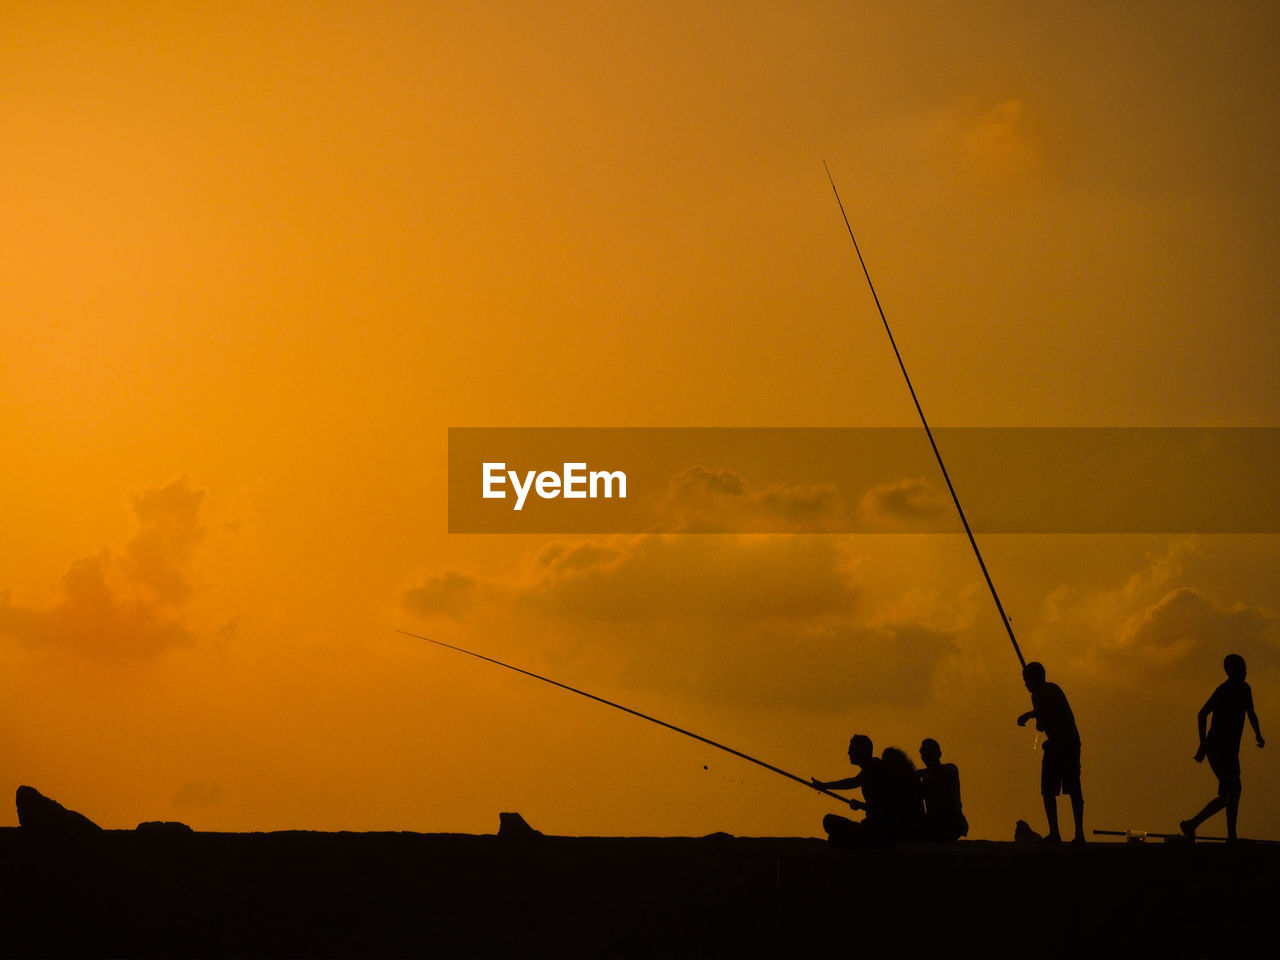 sunset, sky, silhouette, orange color, real people, men, fishing rod, cloud - sky, rod, fishing, group of people, nature, leisure activity, activity, lifestyles, beauty in nature, people, outdoors, scenics - nature, occupation, fisherman